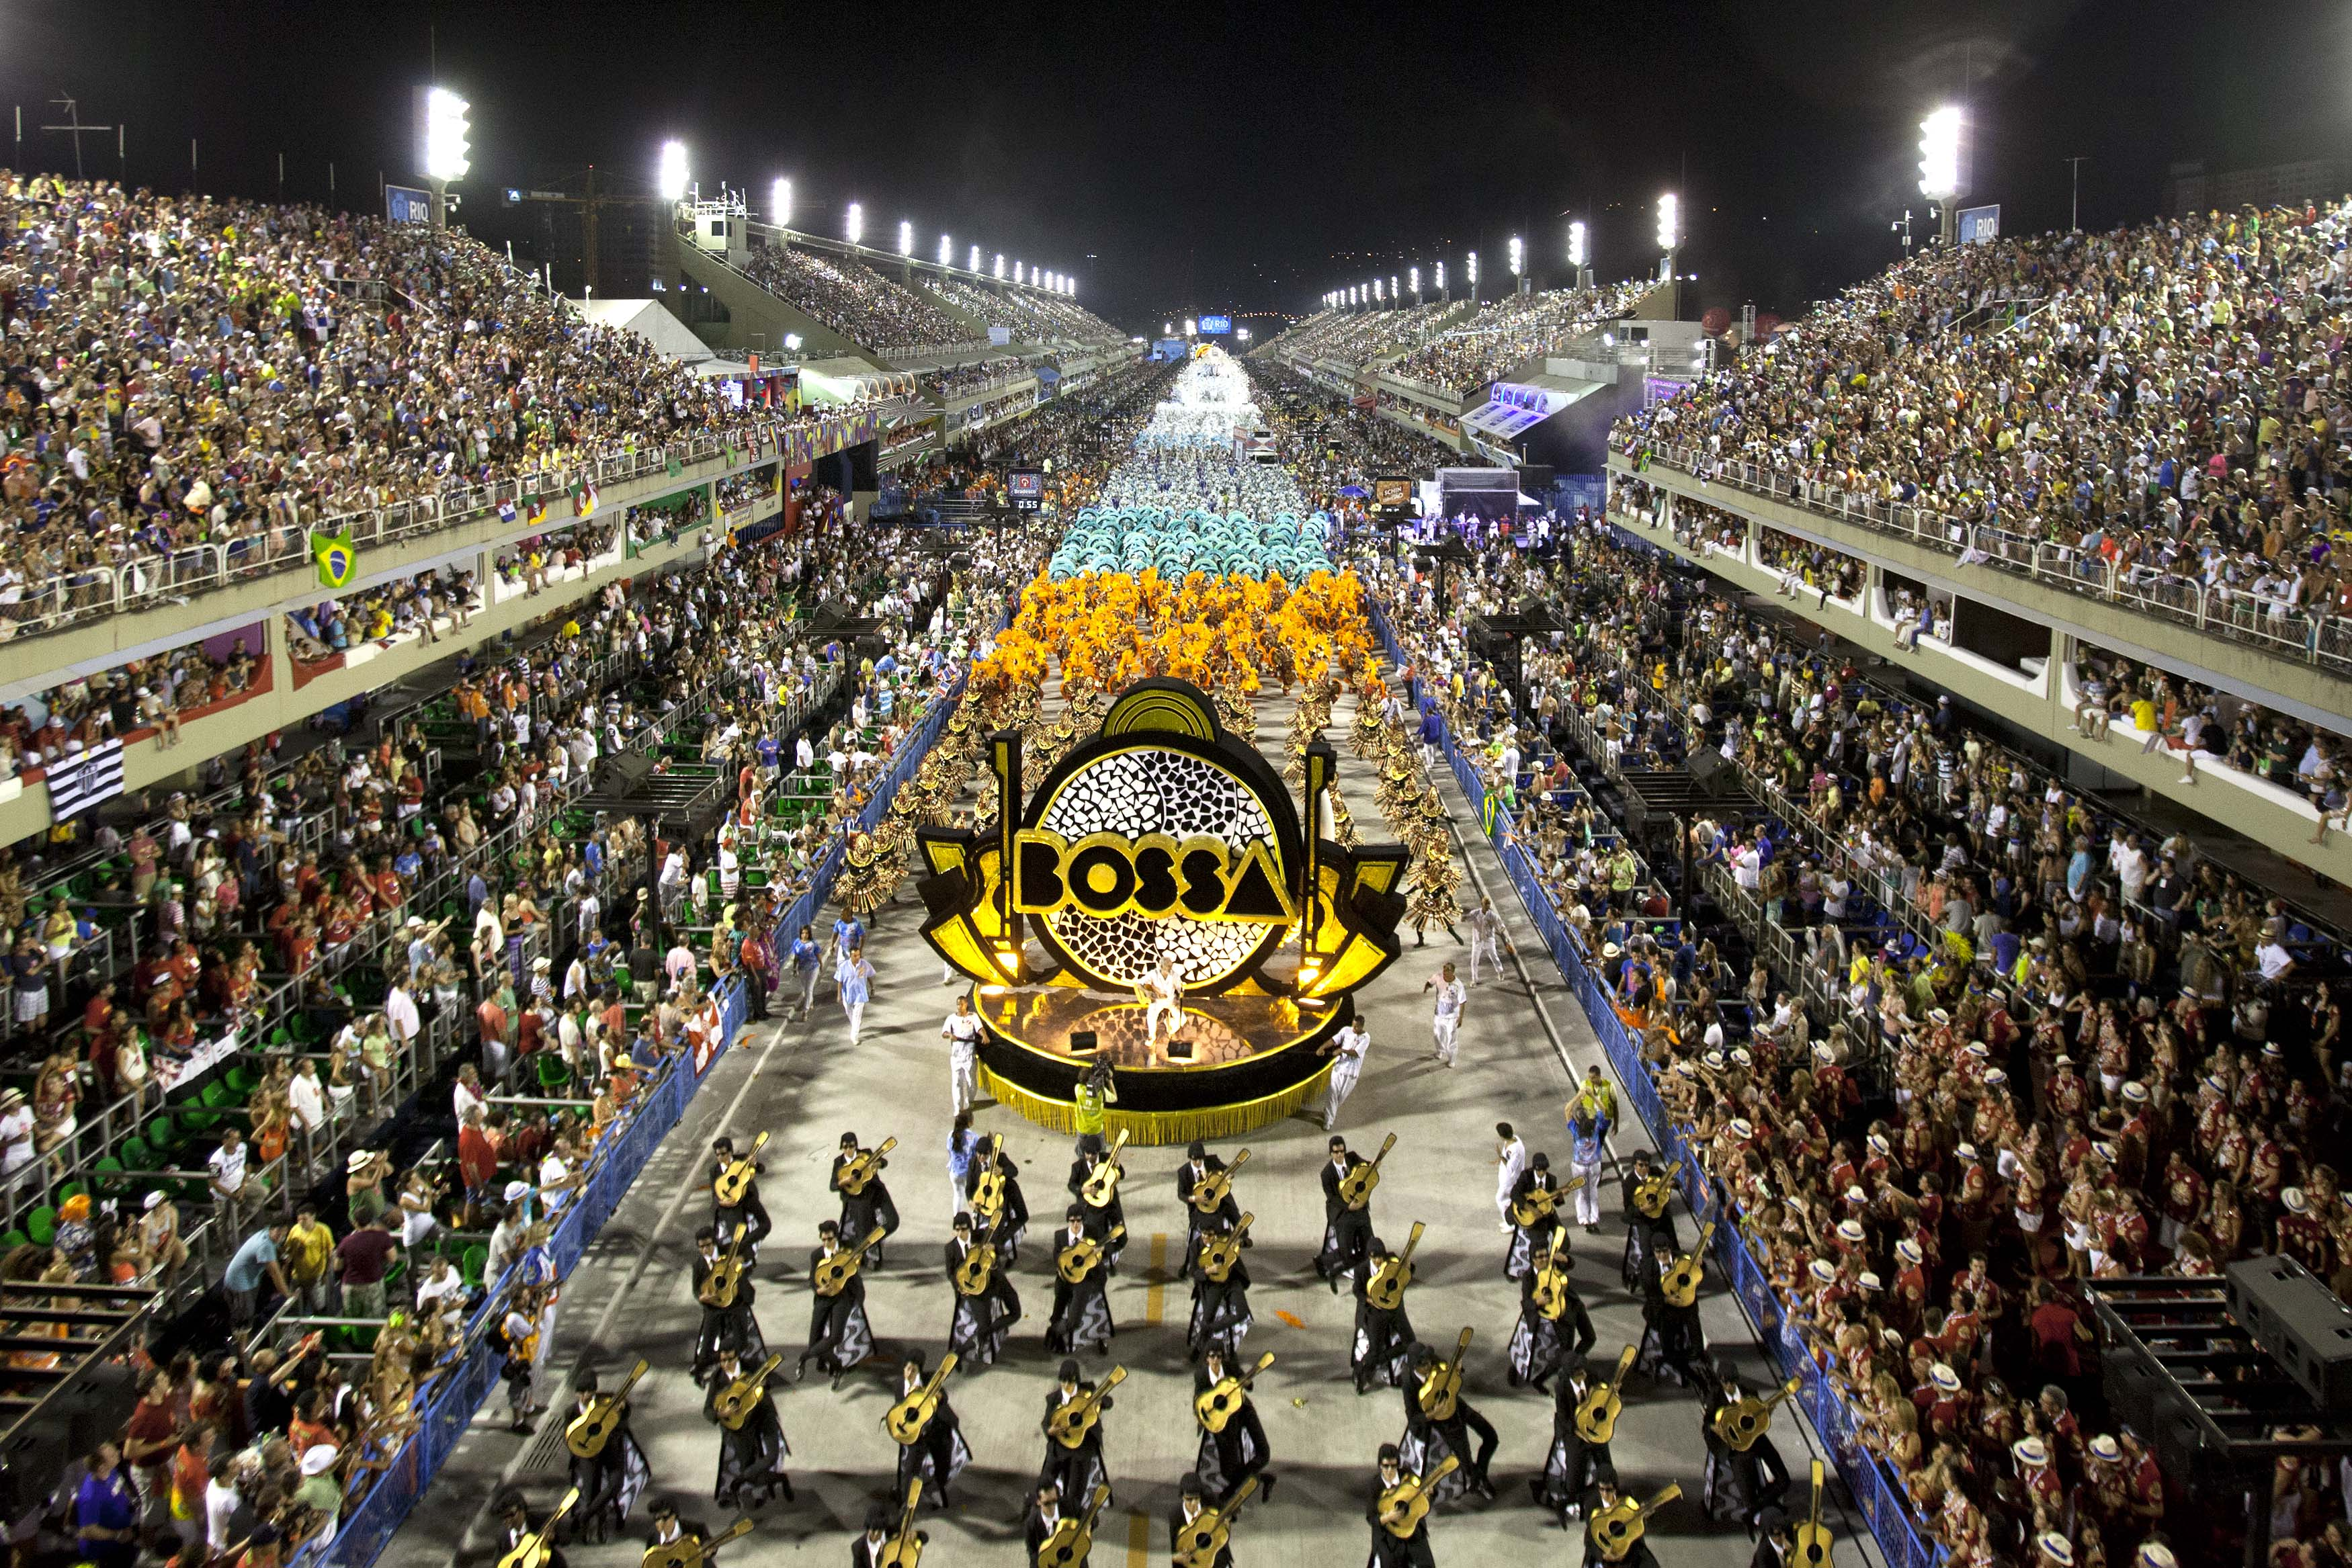 Performers from the Uniao da Ilha do Governador school parade during carnival celebrations at the Sambadrome in Rio de Janeiro, Brazil, early Monday, Feb. 11, 2013. (AP Photo/Felipe Dana)